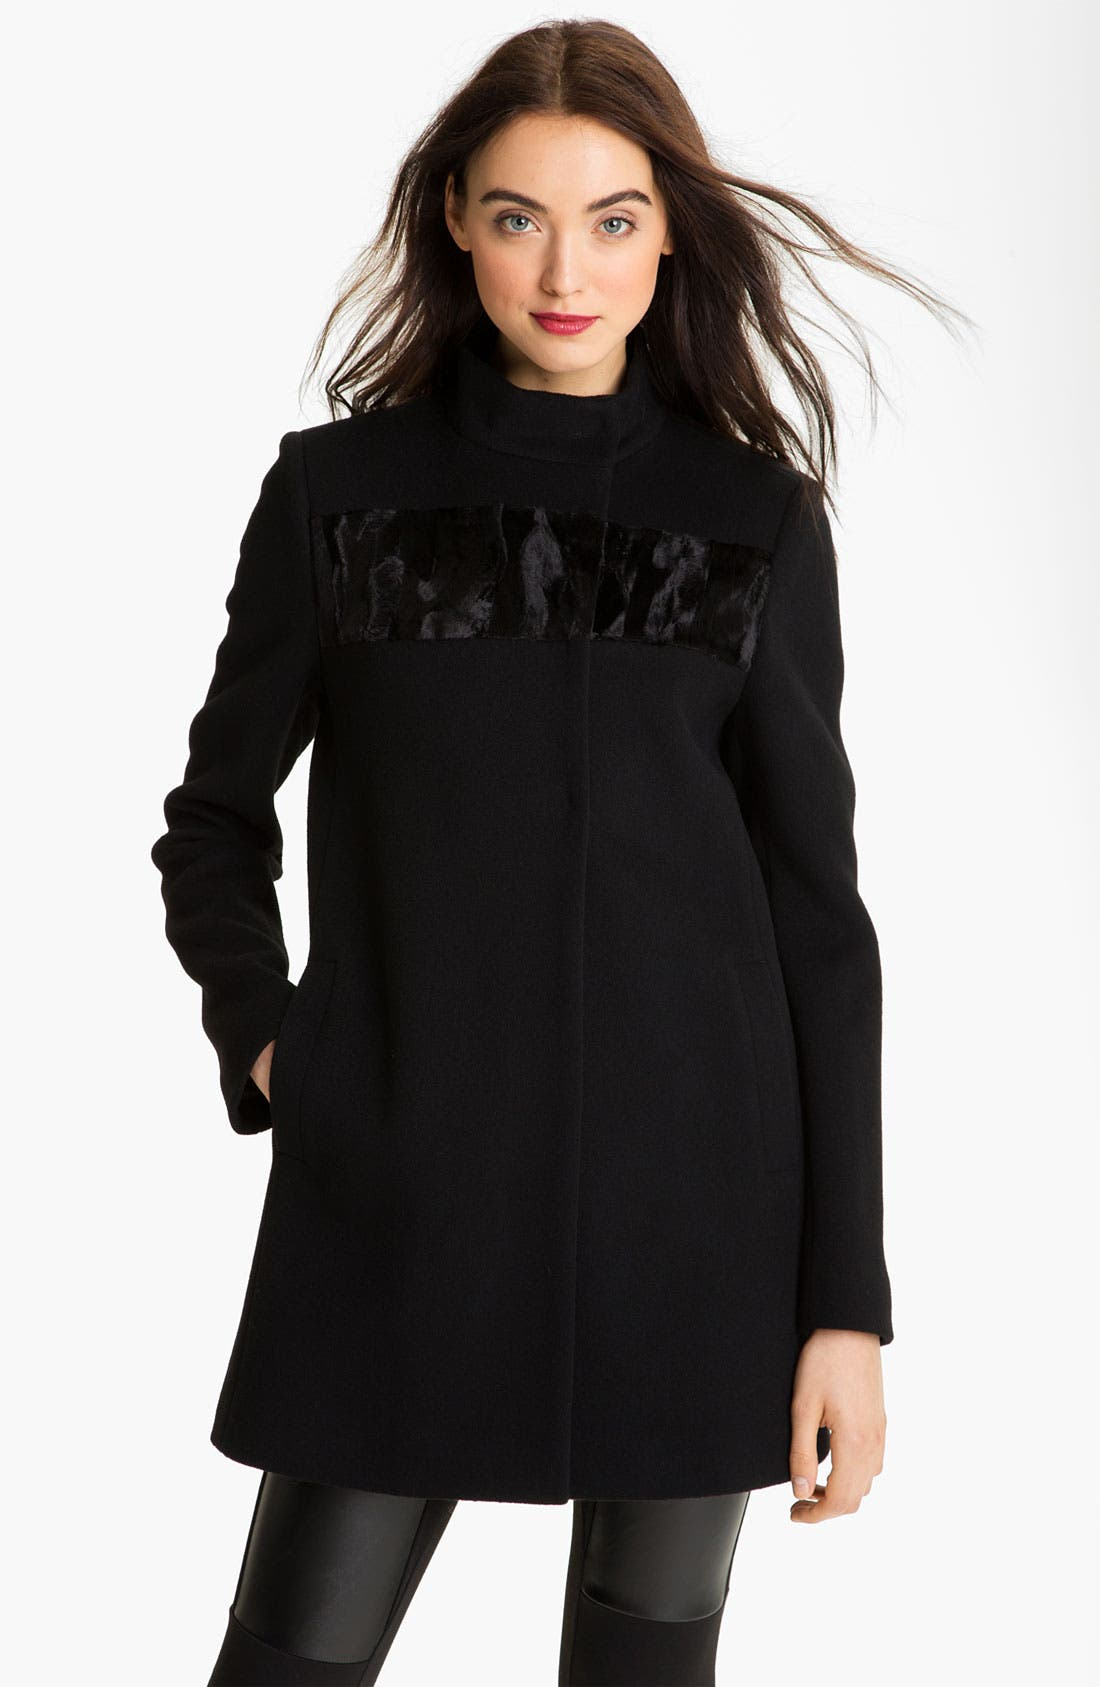 Alternate Image 1 Selected - Elie Tahari Wool Coat with Faux Fur Yoke (Online Exclusive)